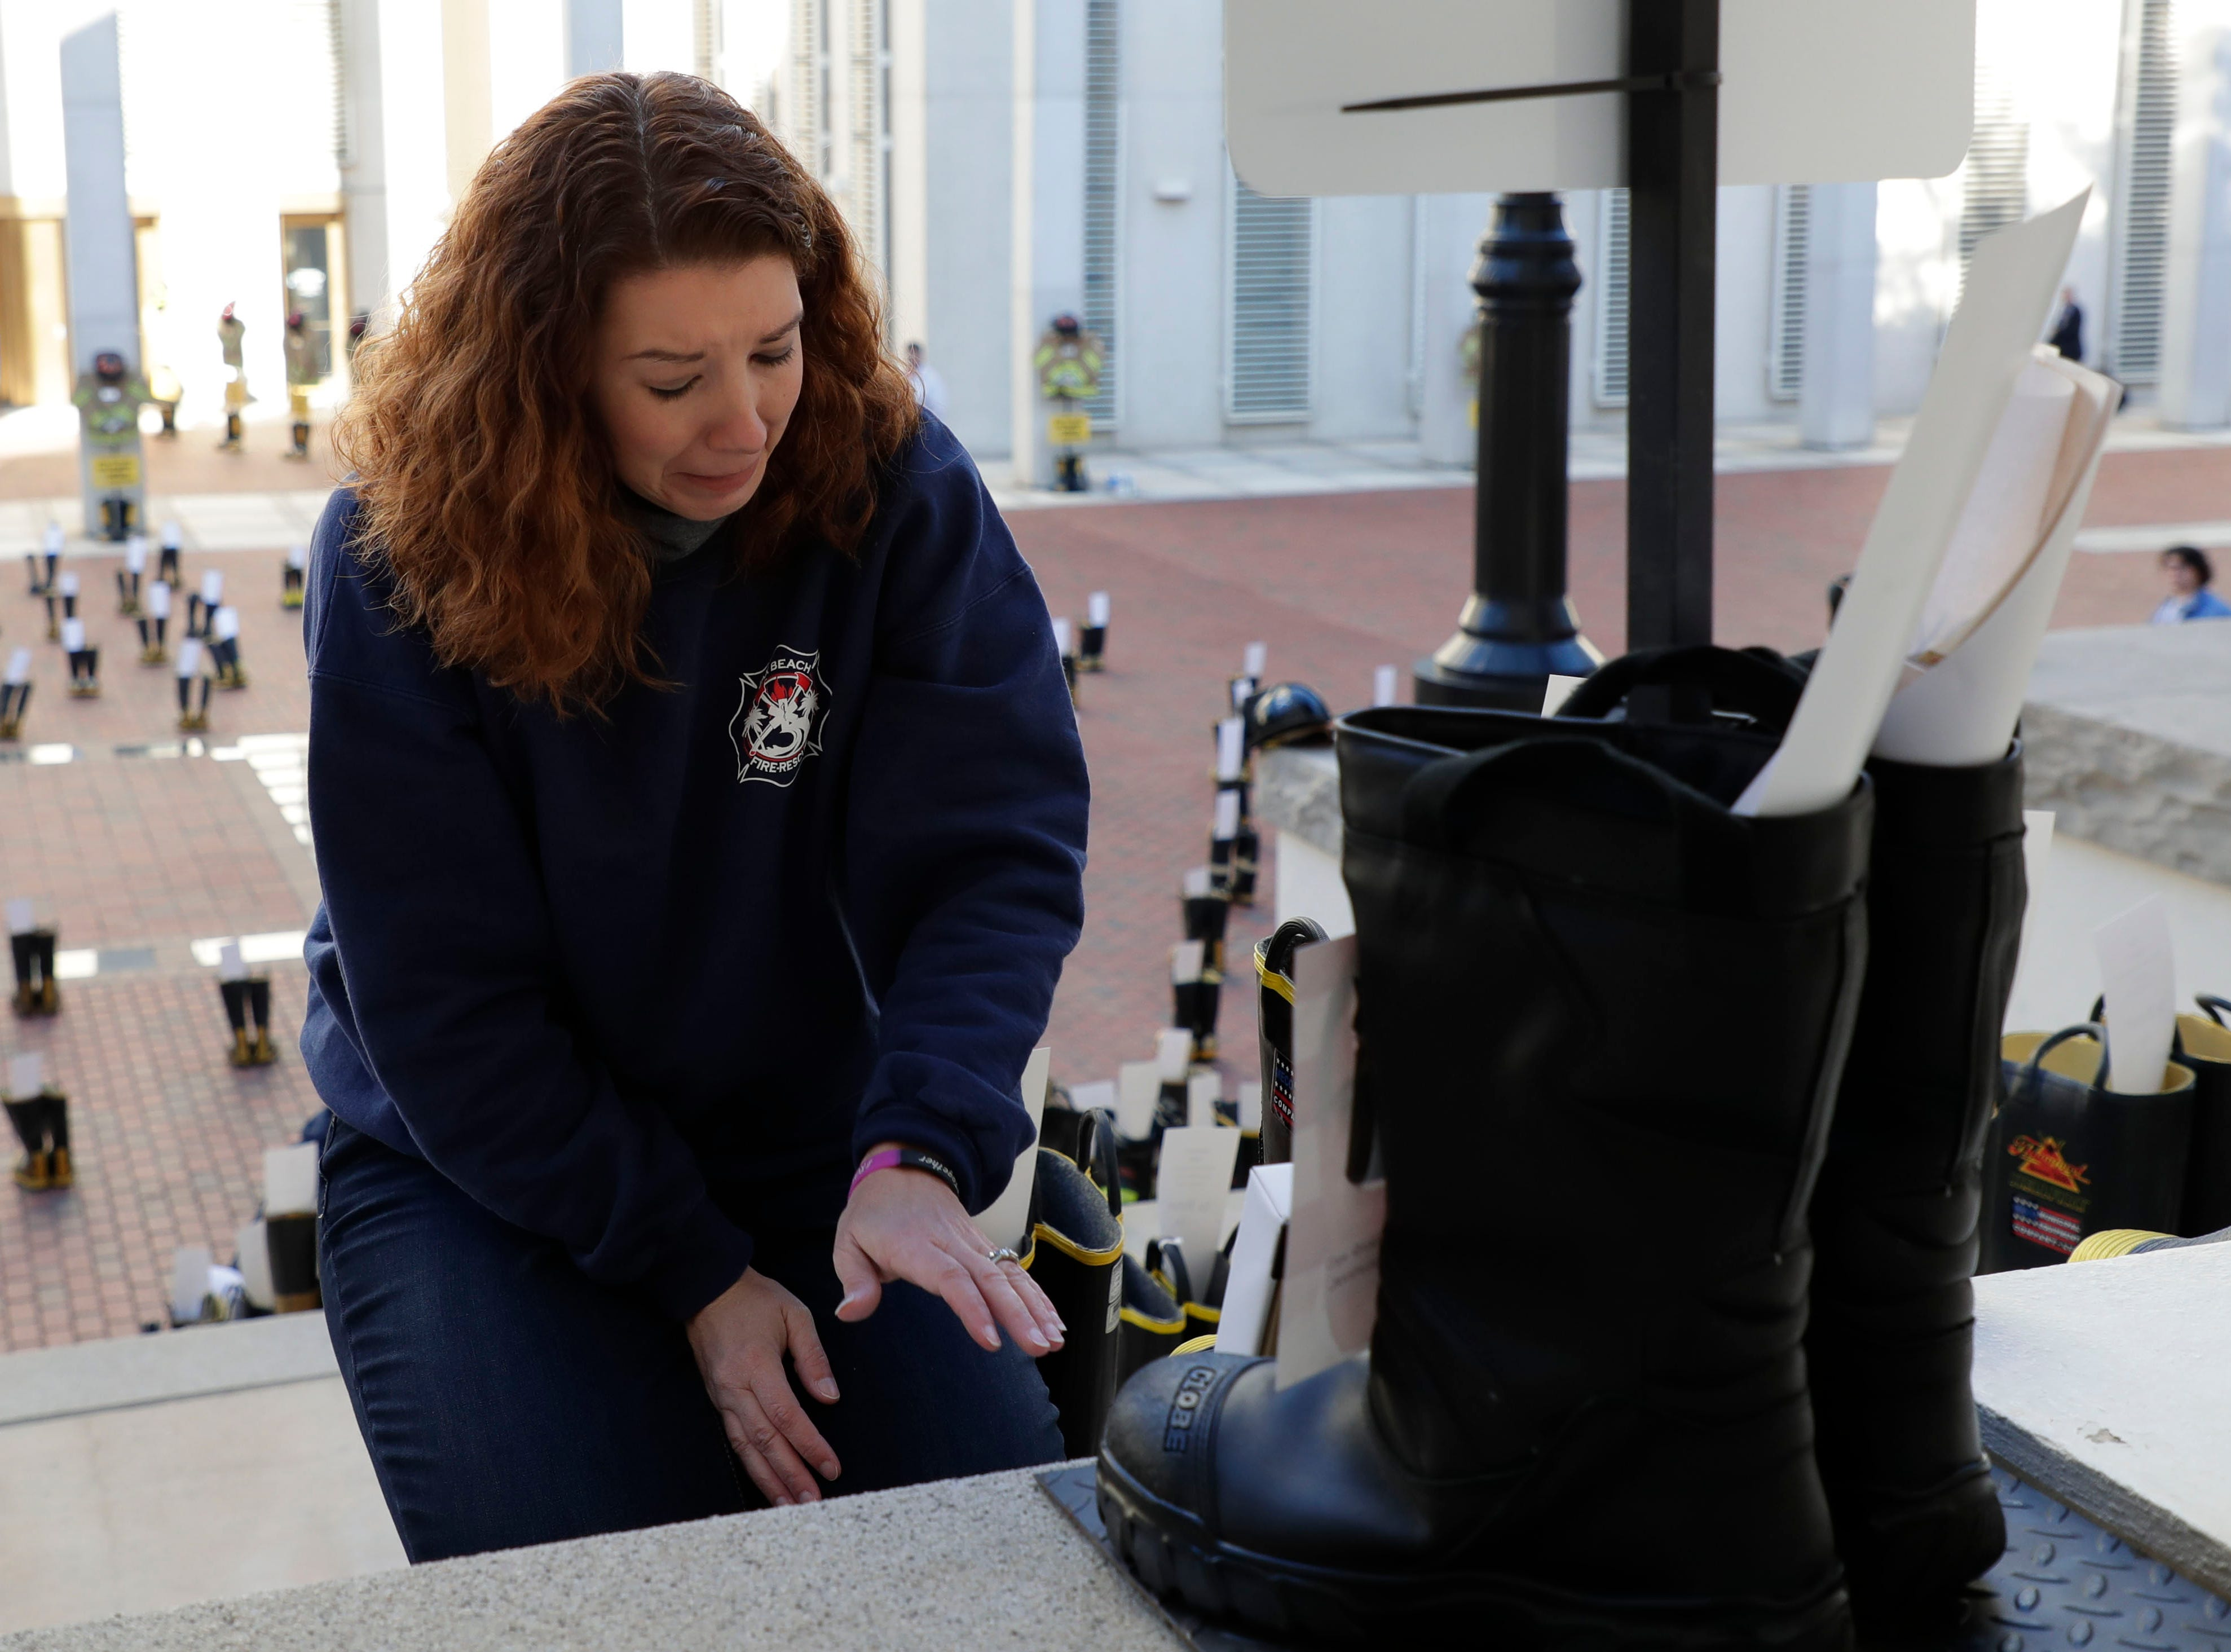 Ashley Rabon, a mother of three who lost her husband, Captain Ronald Rabon with the Jacksonville Beach Fire Department who lost his battle with appendix cancer, takes a moment of silence for her husband. Firefighters and their families from around the state create a display at the Capitol of 500 pairs of boots in honor of firefighters who lost their battle or are battling with cancer caused from smoke inhalation and carcinogens Thursday, March 7, 2019. The state of Florida is one of five states in the country that does not have a bill acknowledging cancer is a job-related illness.